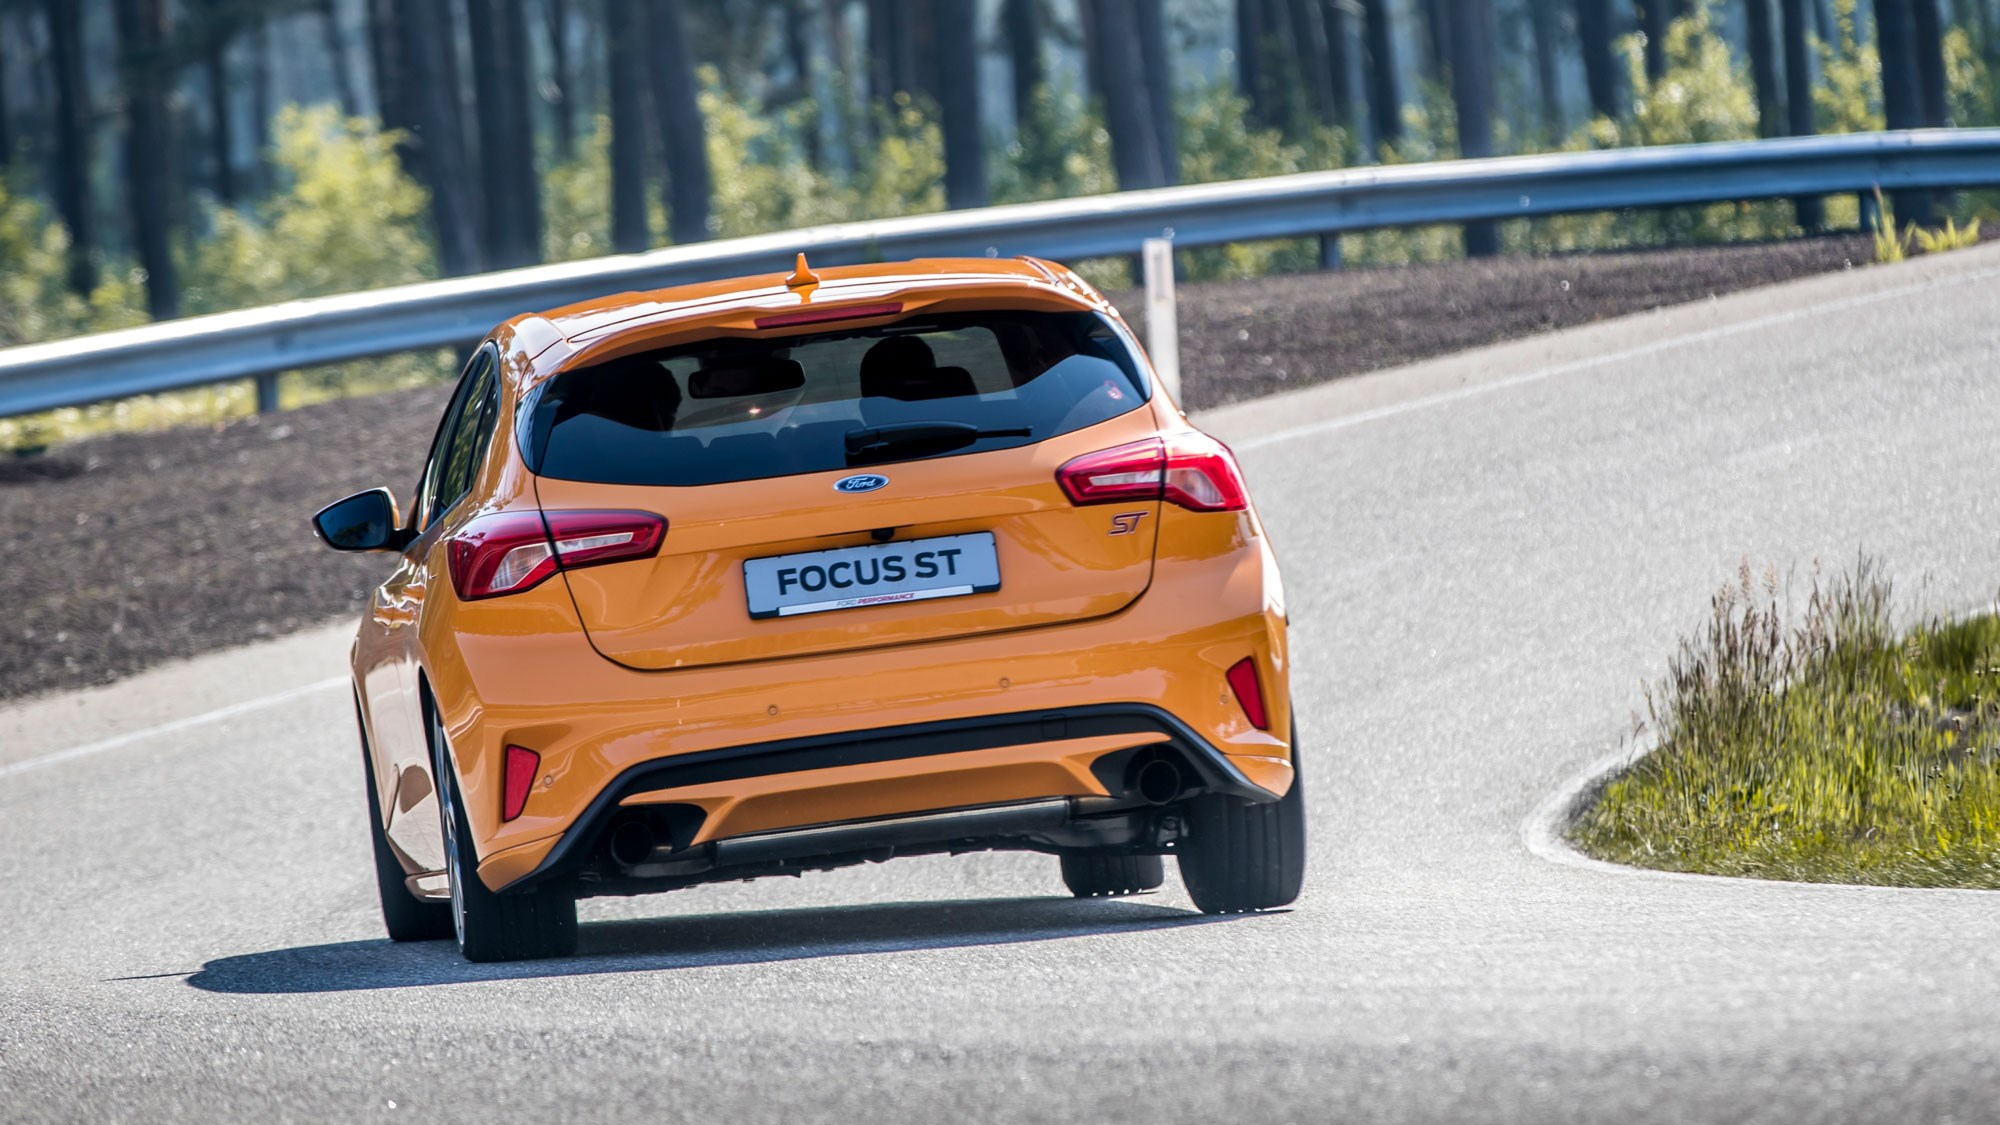 New Ford Focus St 2019 Review A Serious Golf Gti Rival Car Magazine